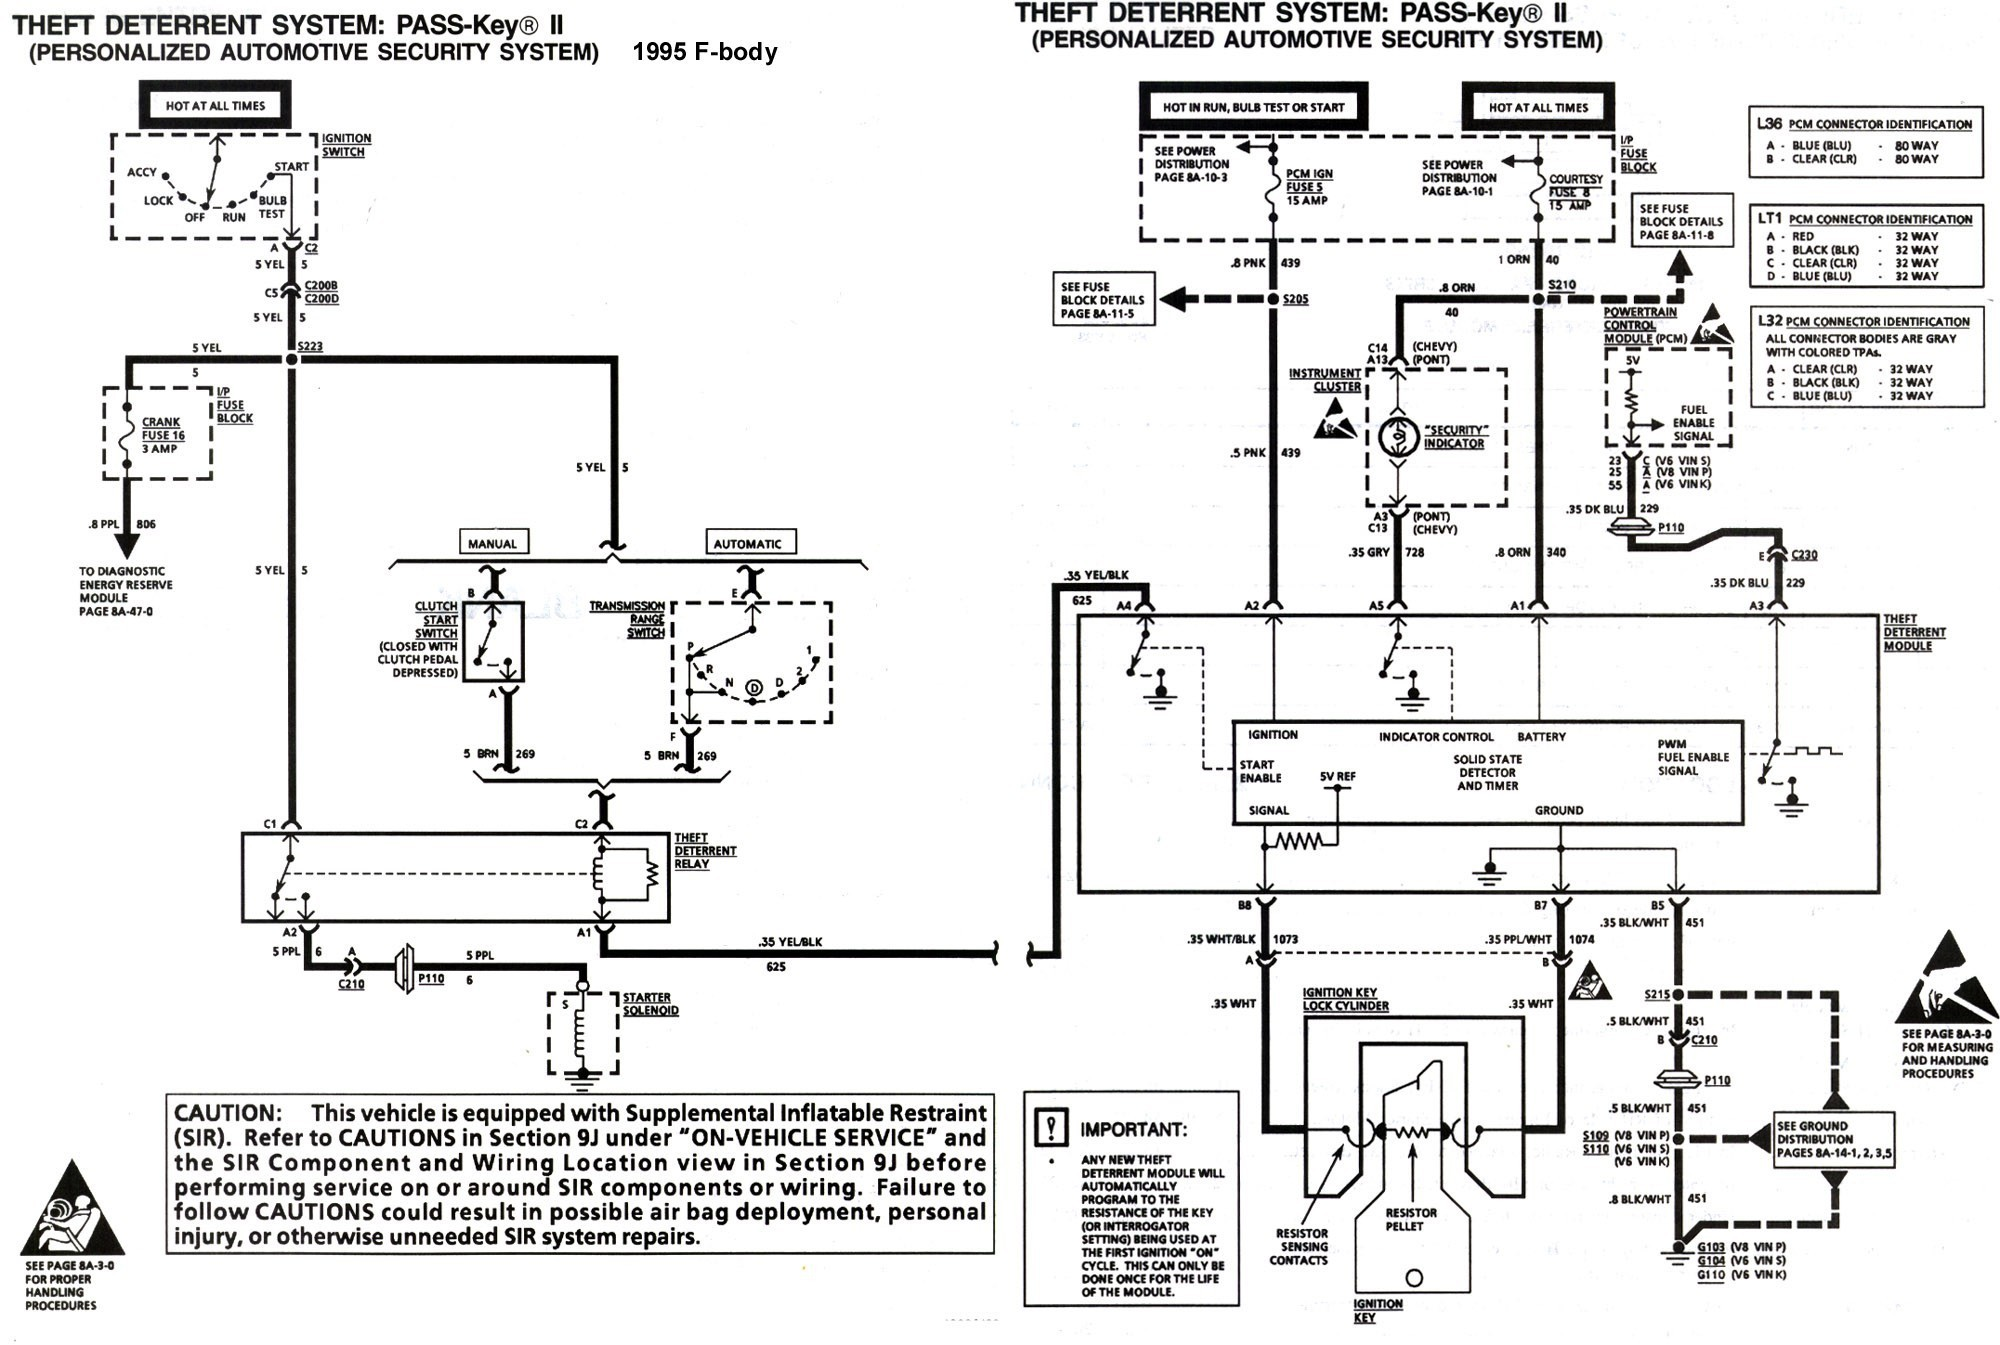 5 7 Vortec Engine Diagram 2 5 3 Vortec Engine Diagram Wiring Diagram Inside Of 5 7 Vortec Engine Diagram 2 96 4 3 Vortec Ecu Wiring Diagram Wiring Diagram for You